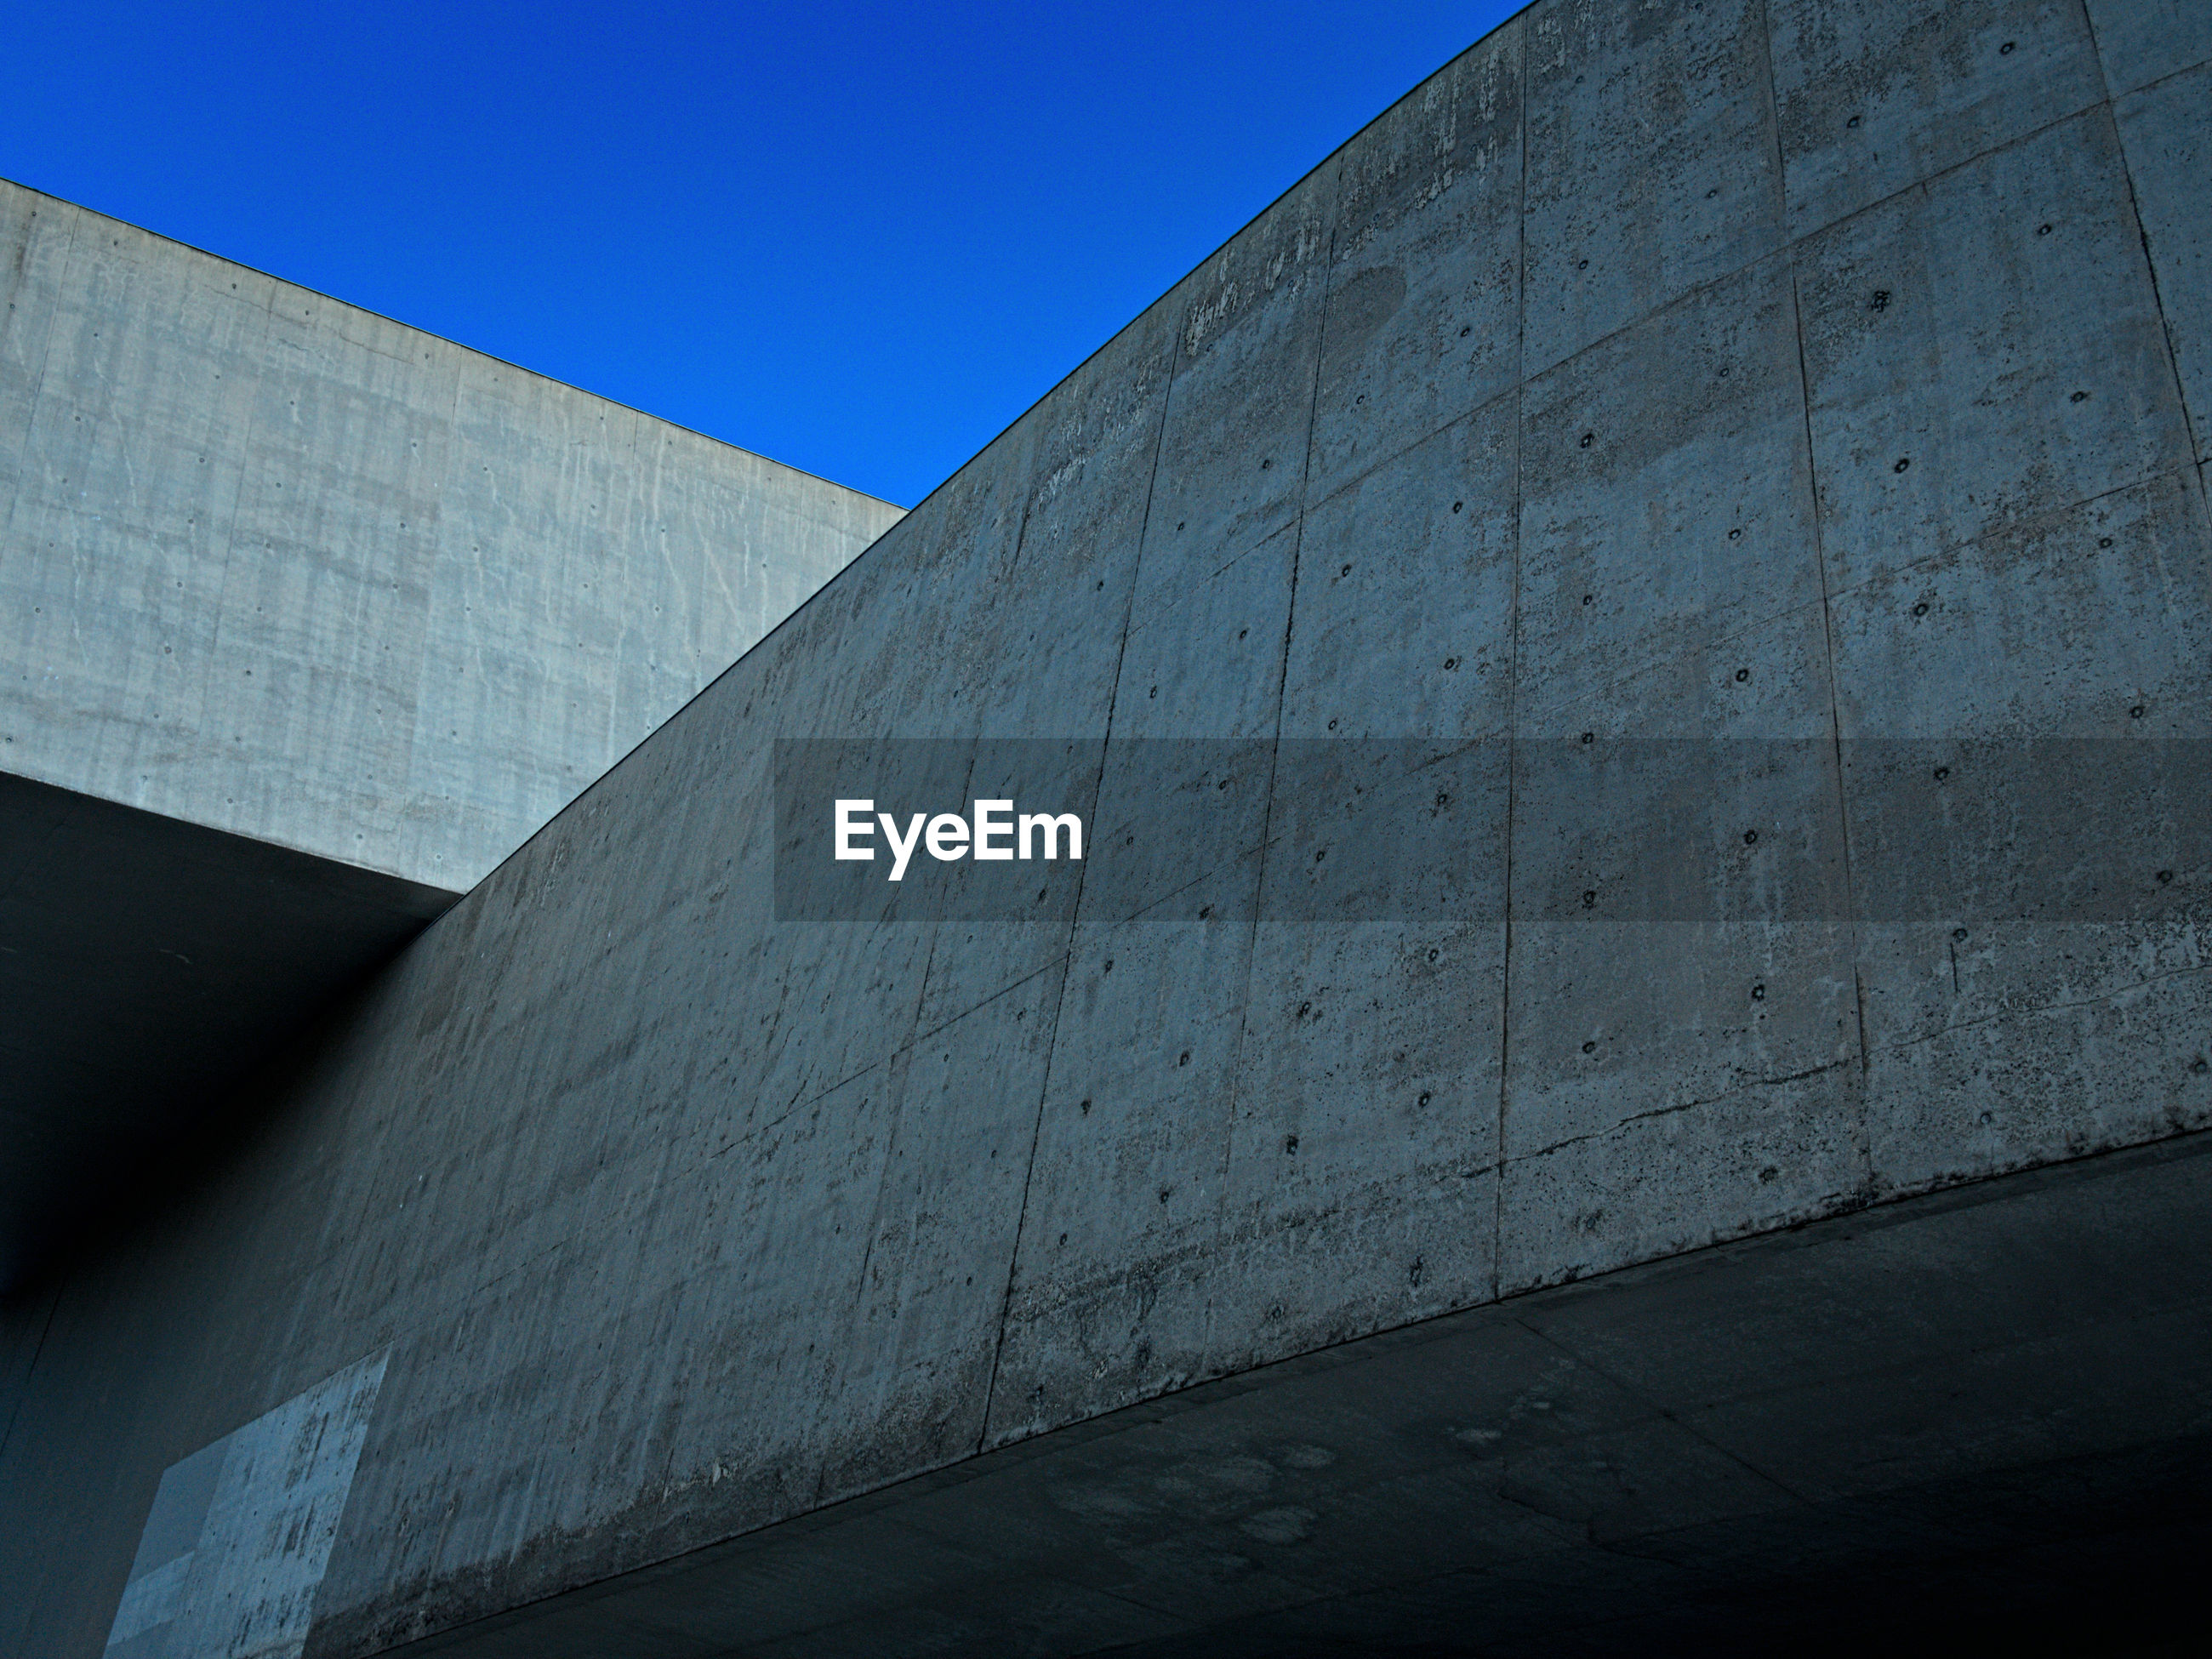 Low angle view of concrete wall against clear blue sky